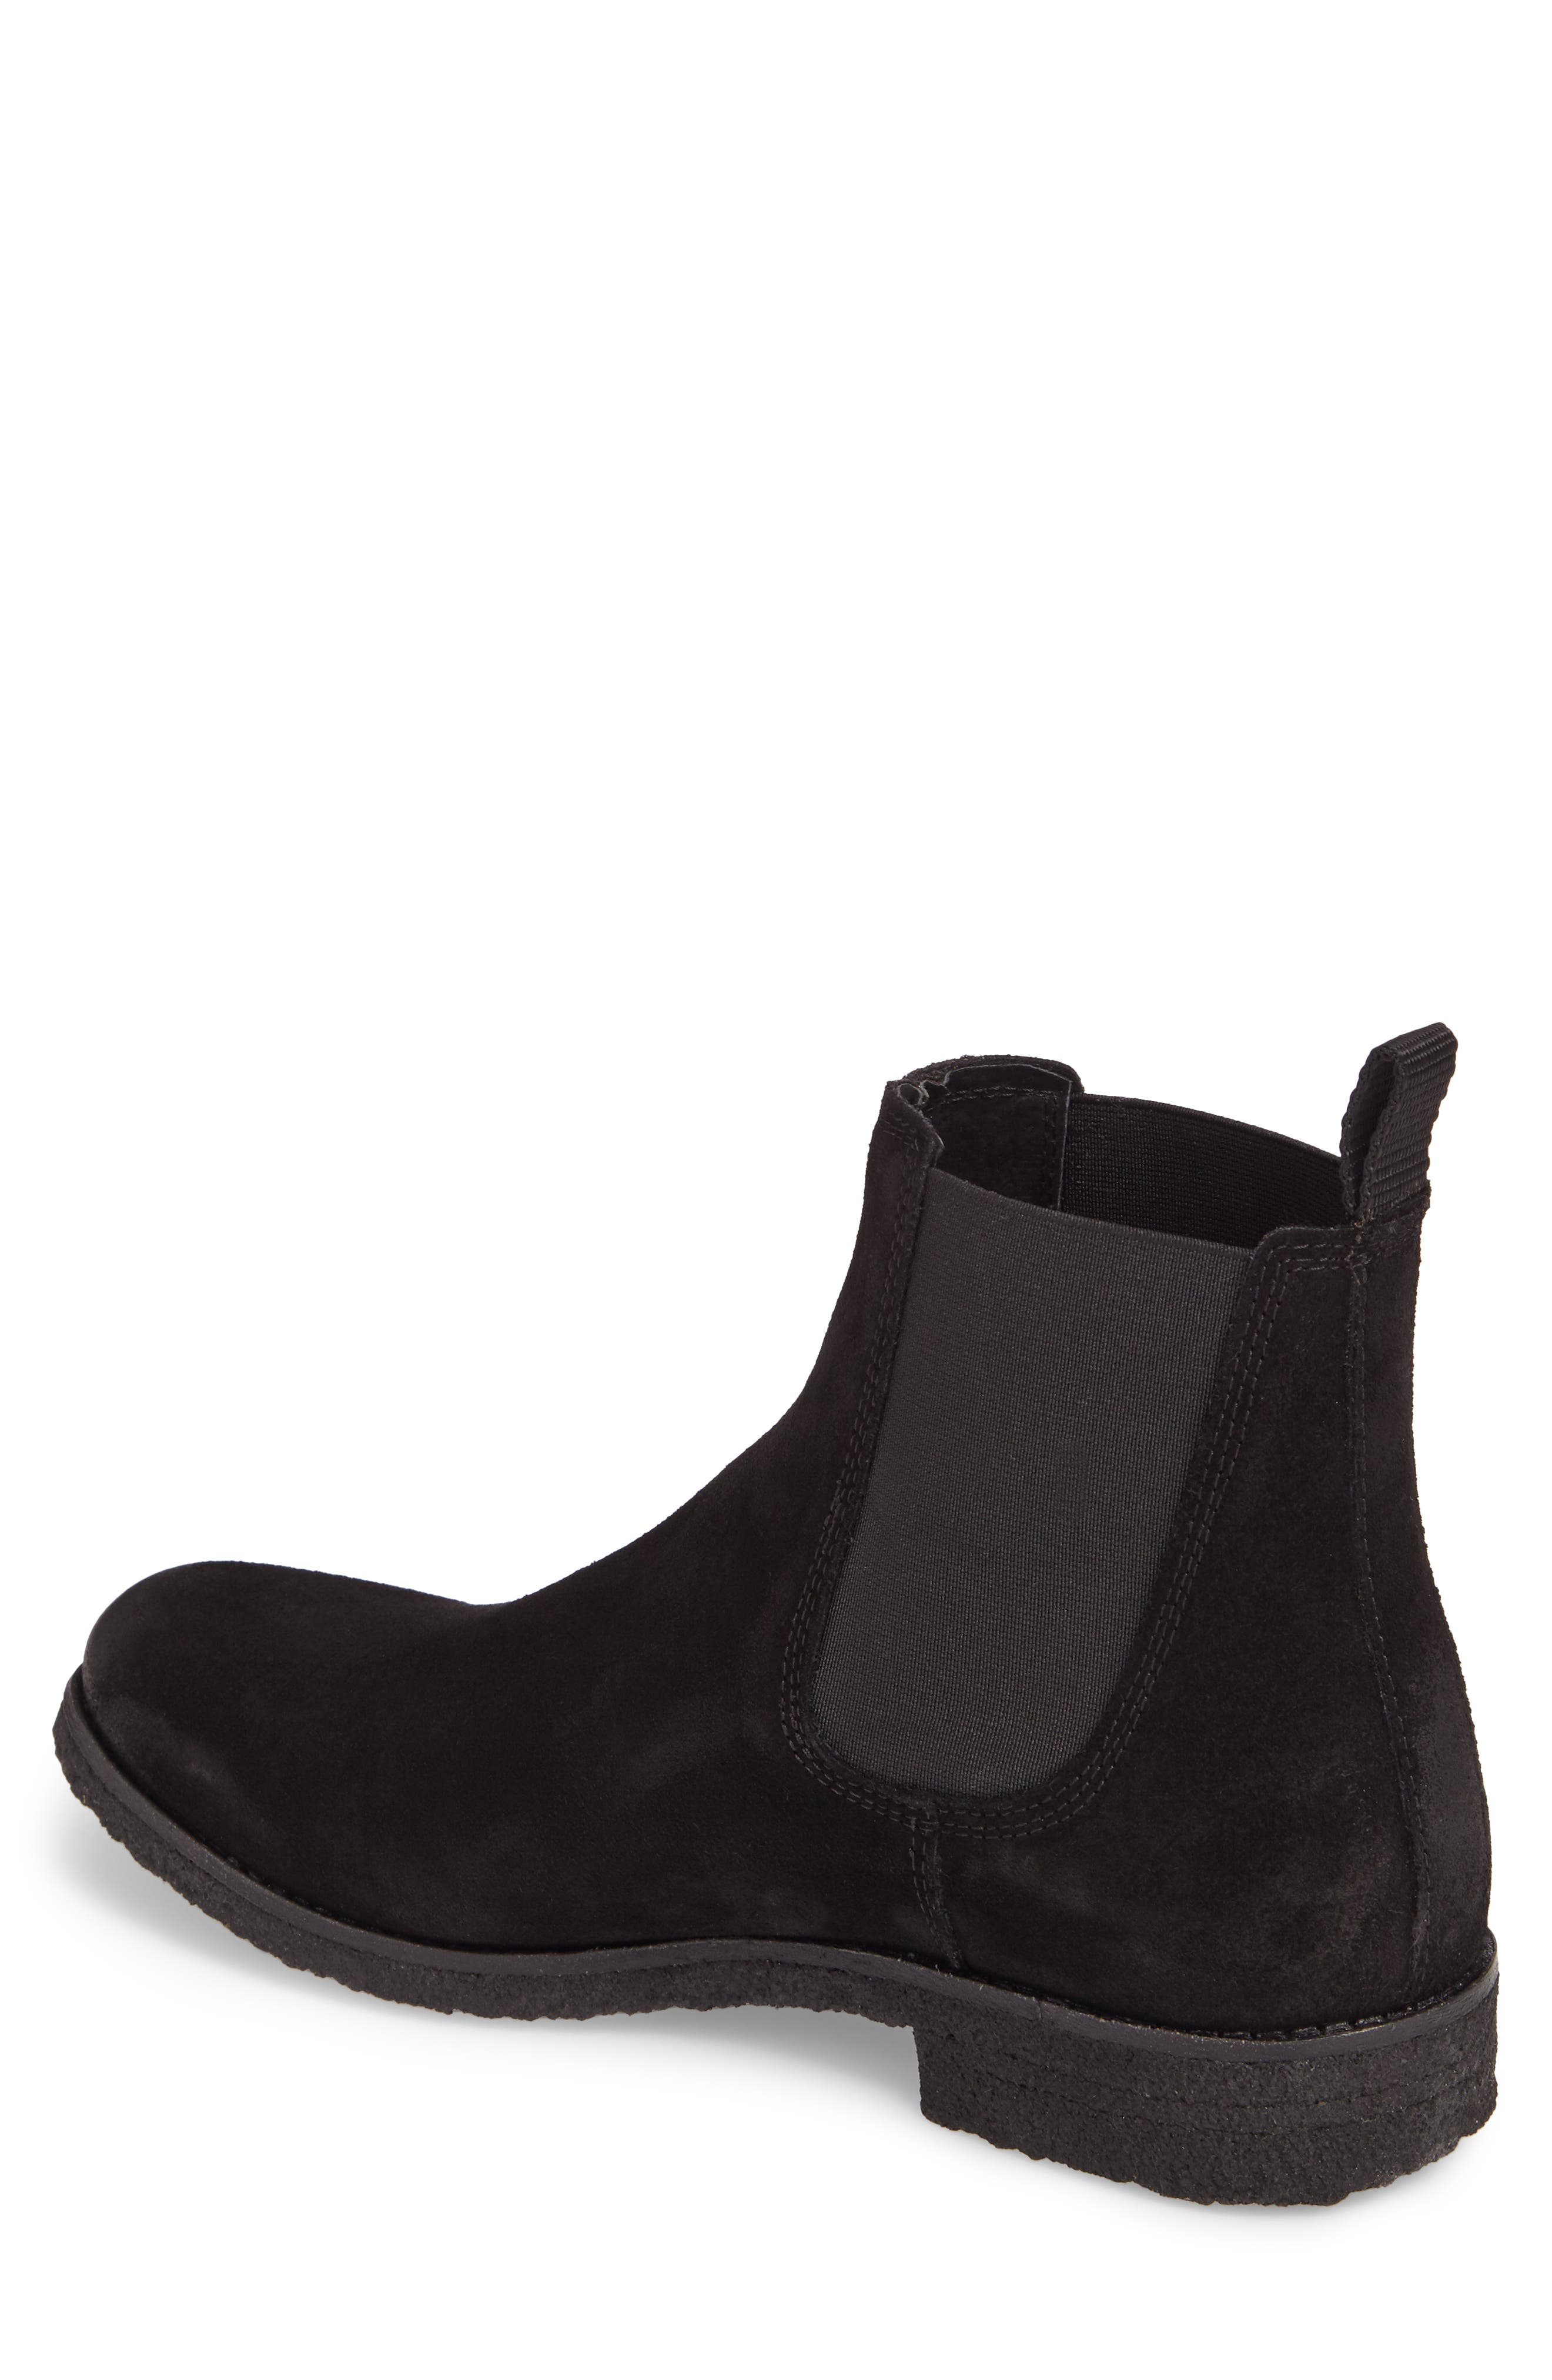 Jared Chelsea Boot,                             Alternate thumbnail 2, color,                             Black Suede